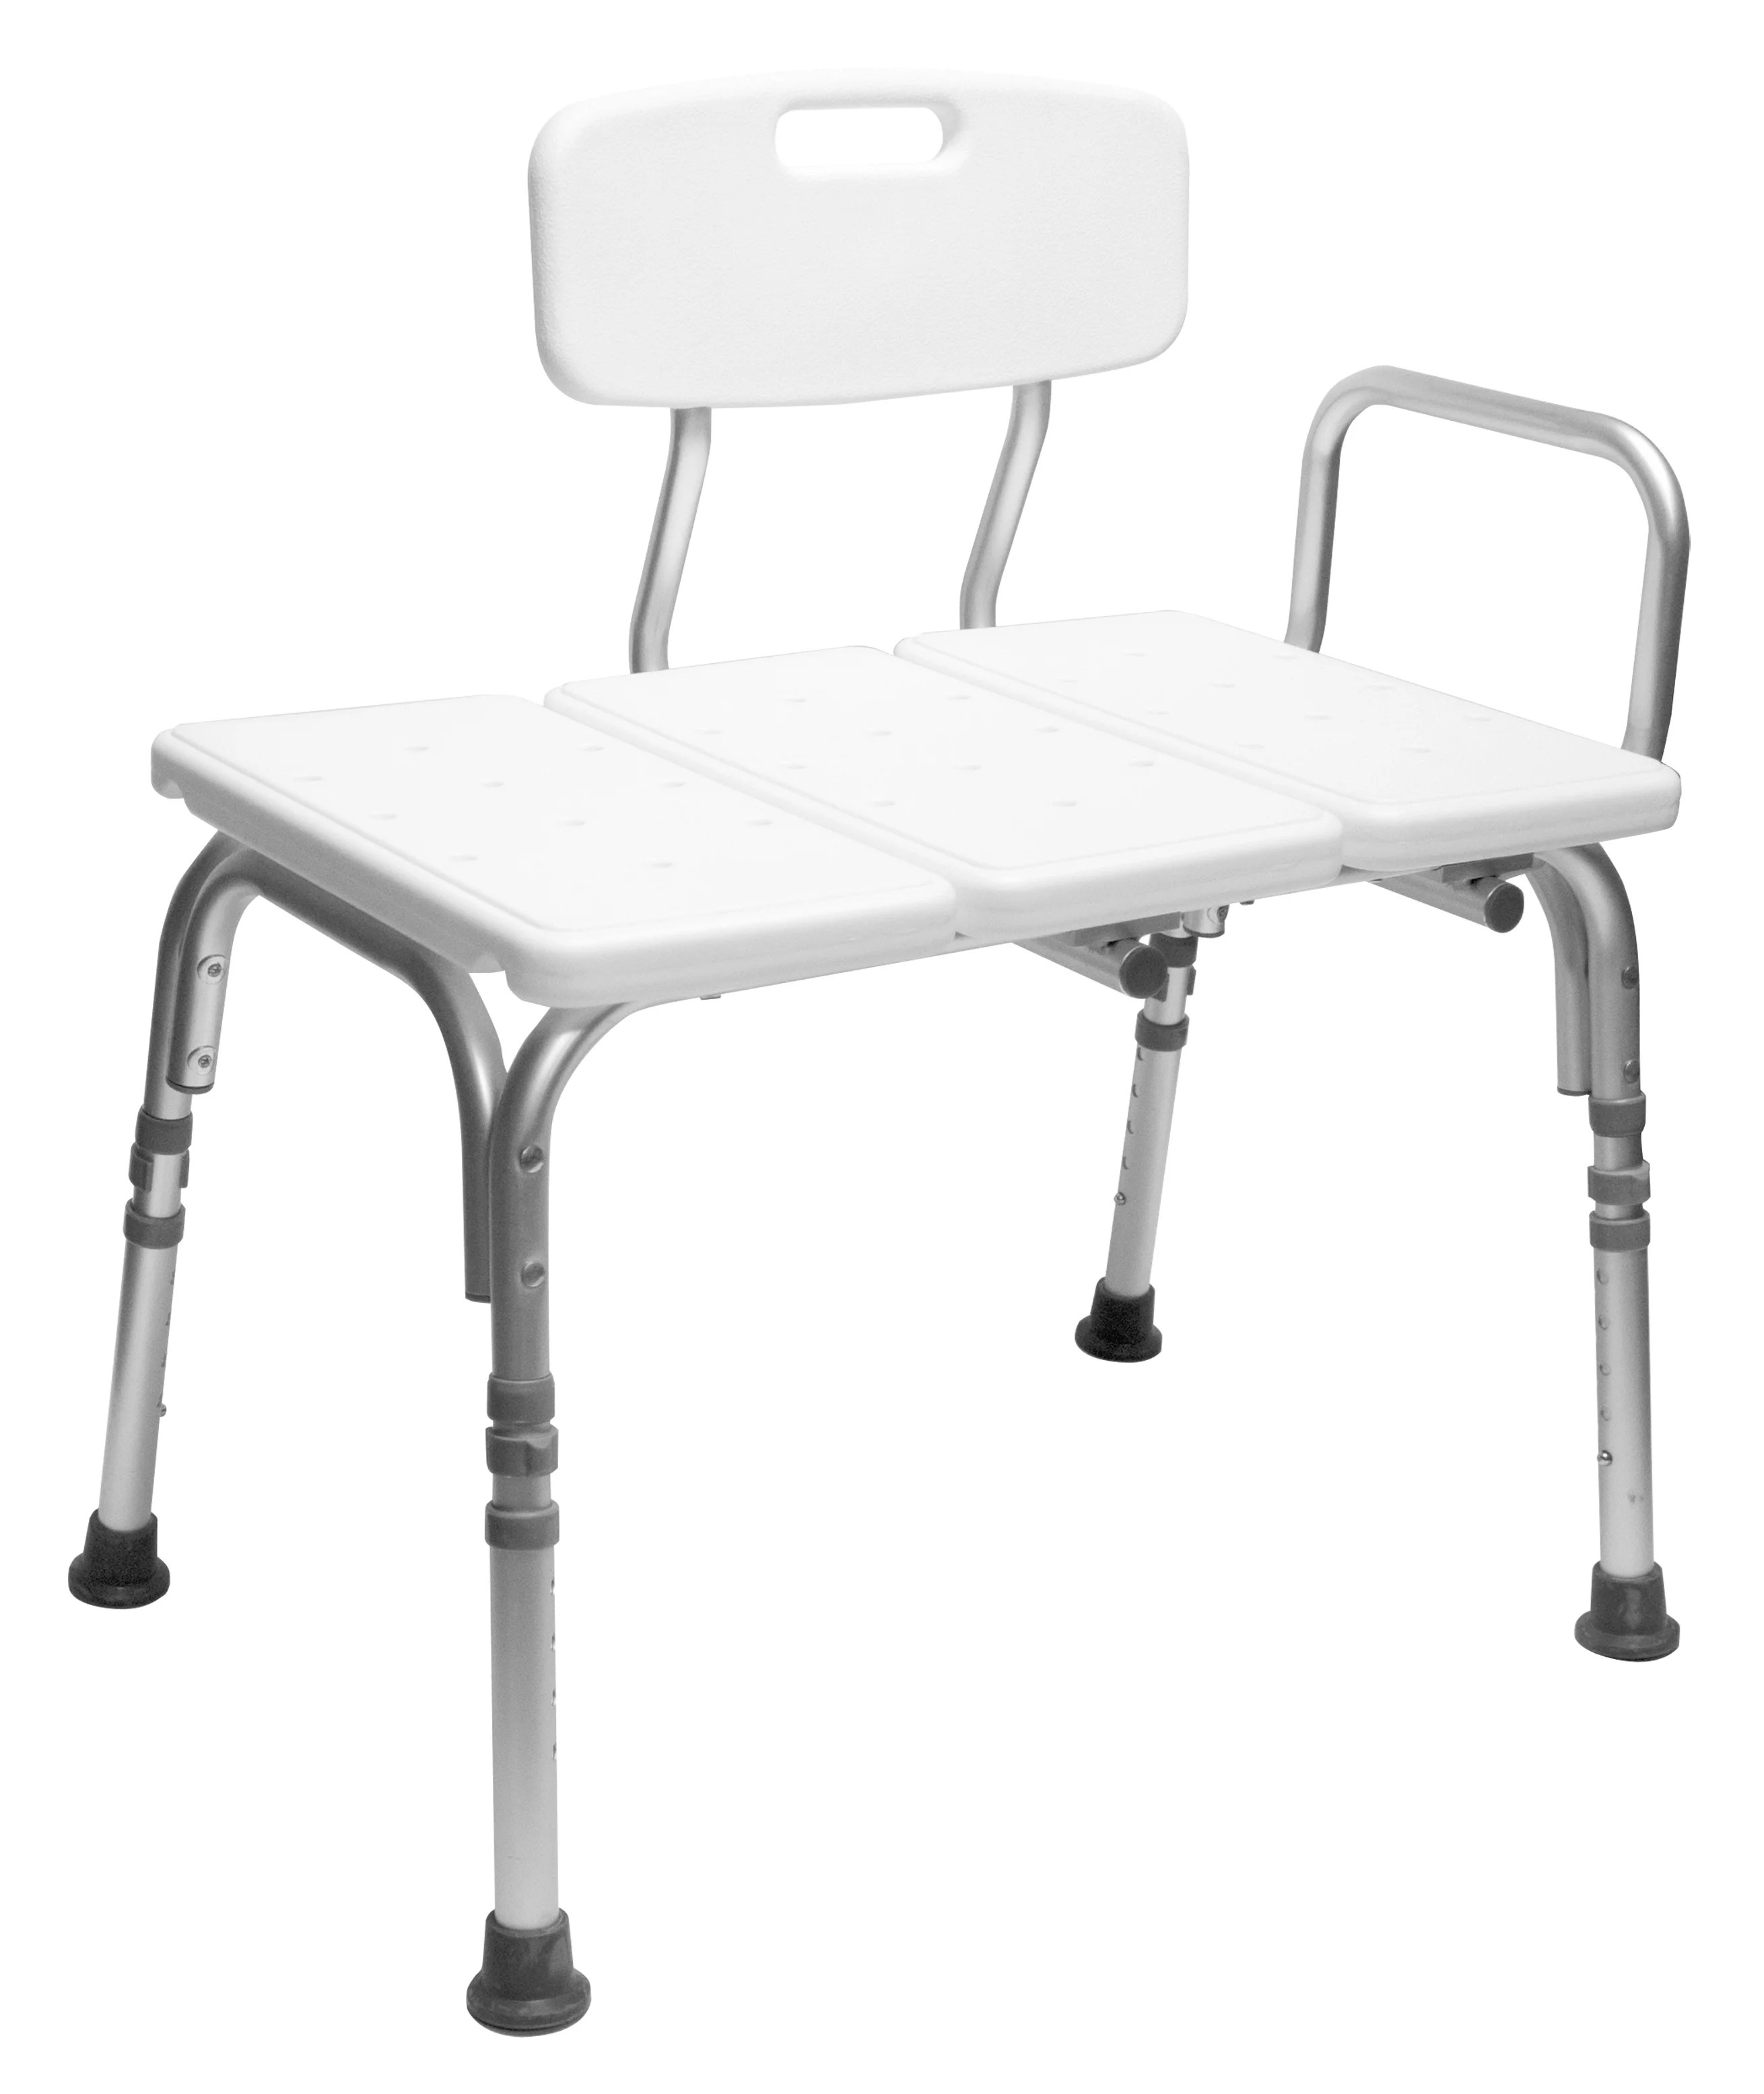 Healthline Tub Transfer Bench Lightweight Medical Bath